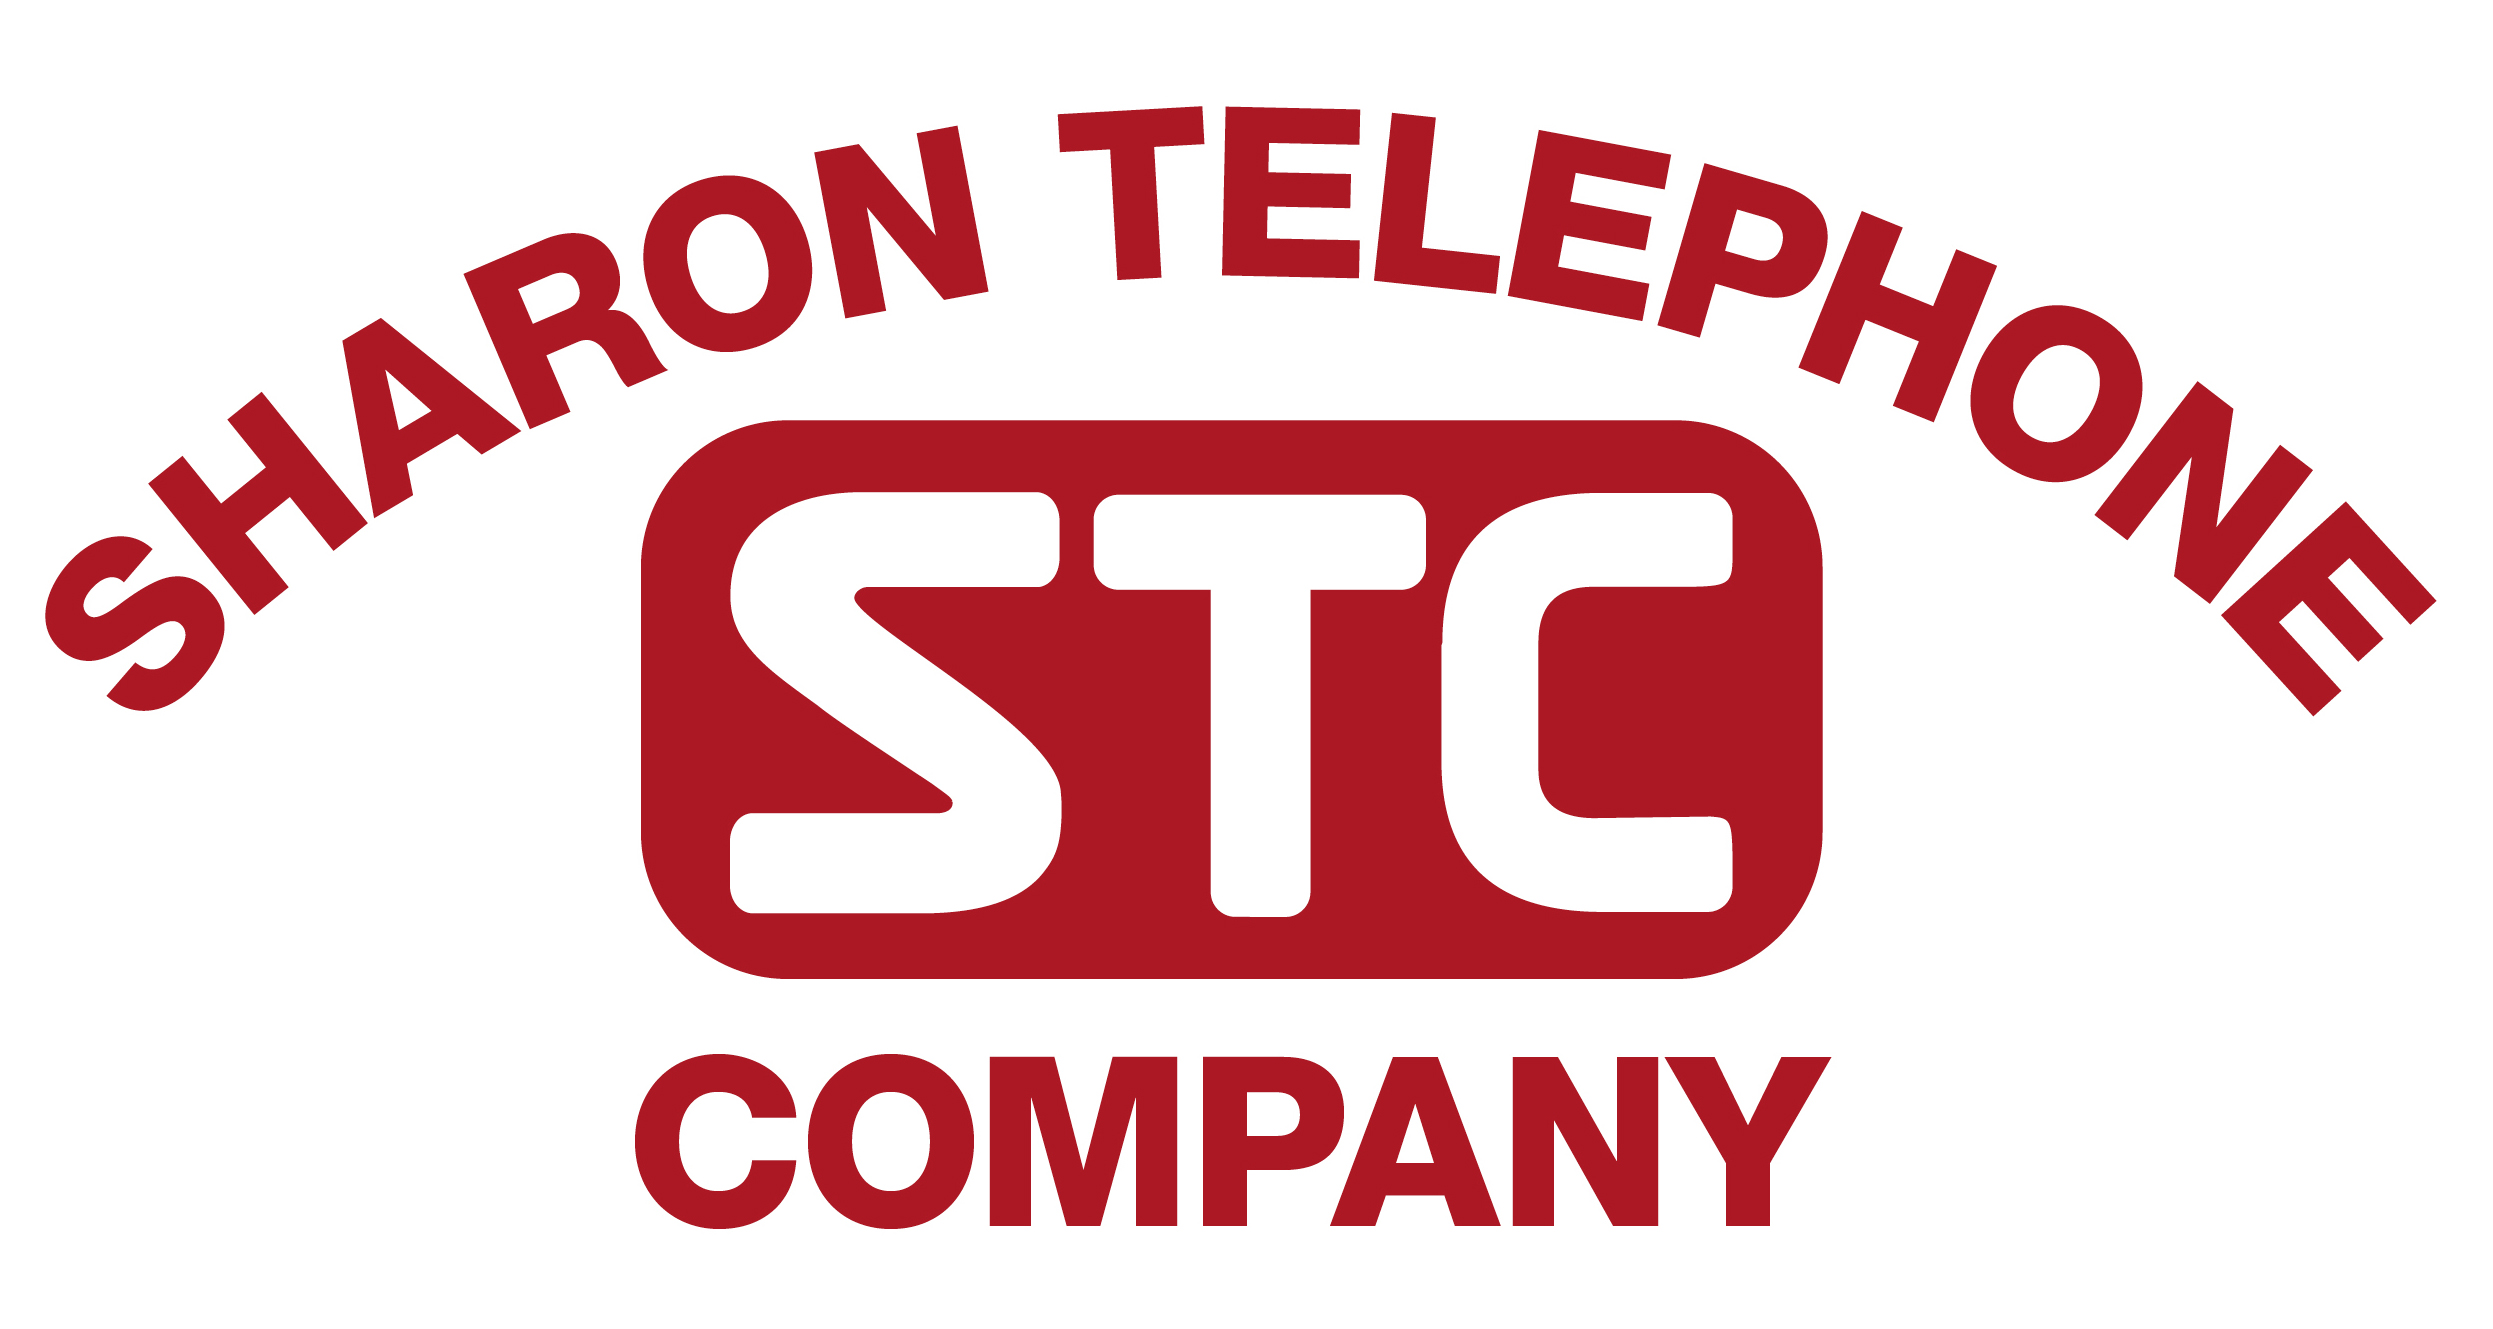 Sharon Telephone Company